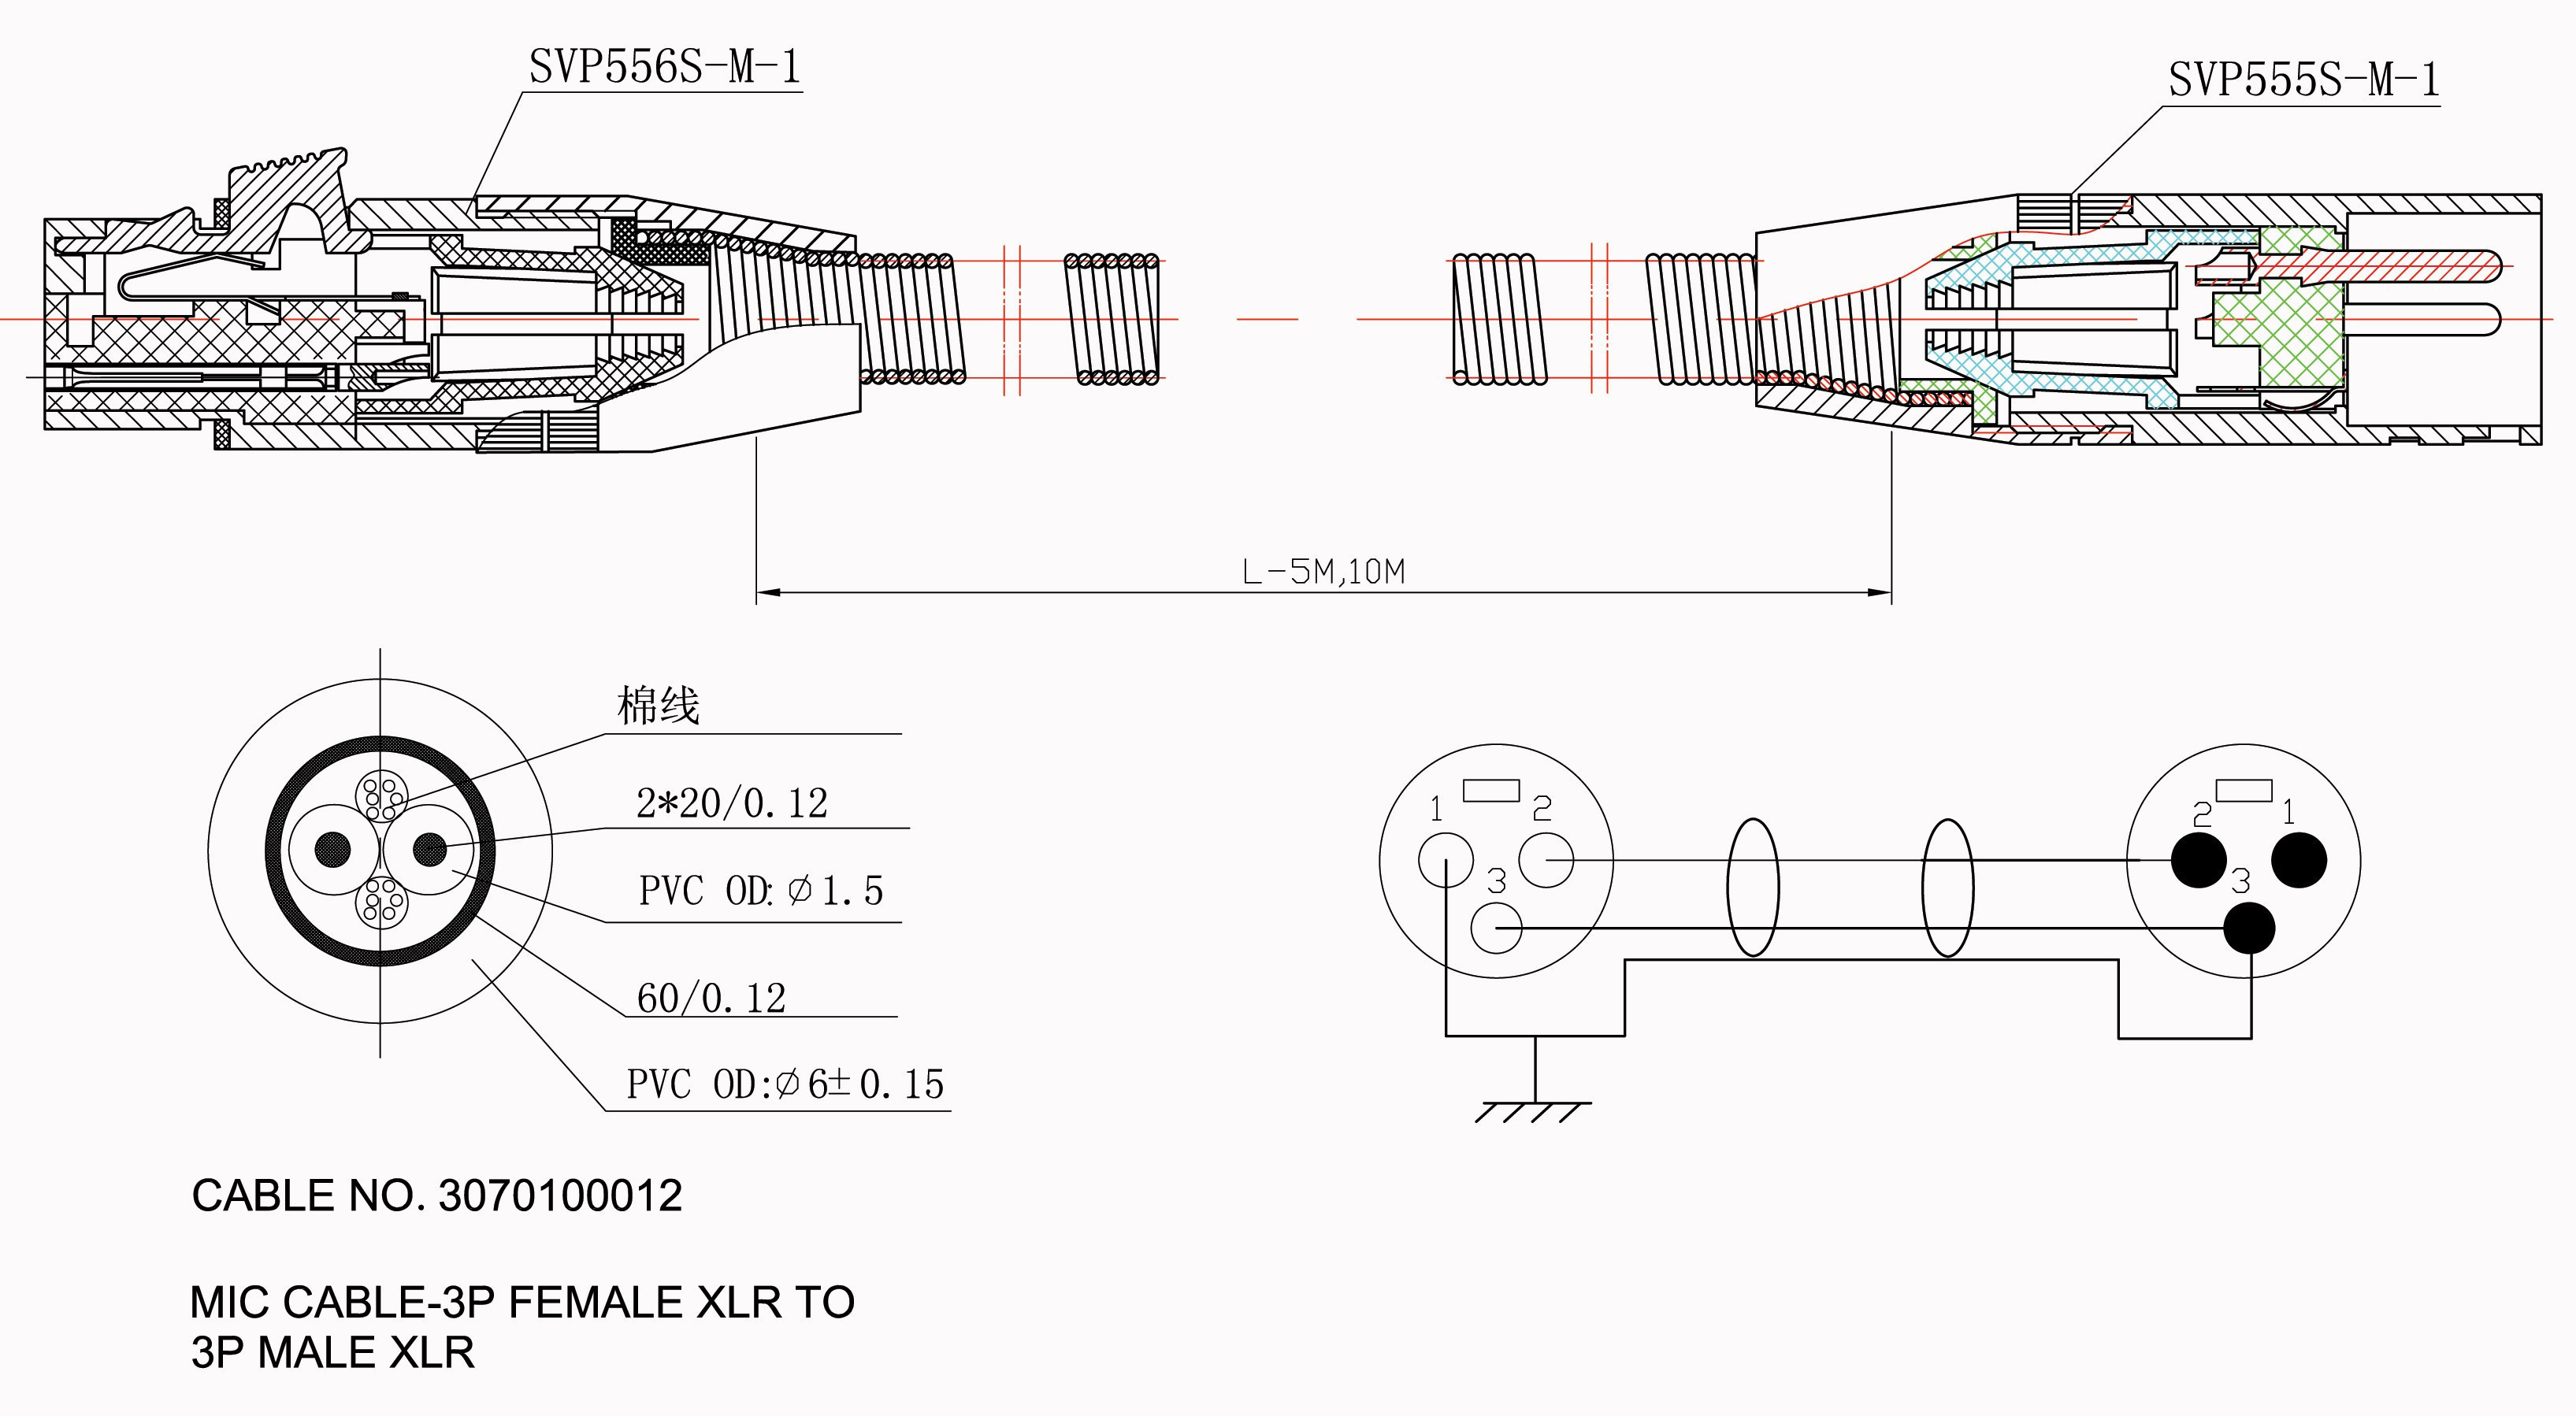 6 Channel Amp Wiring Diagram from 2020cadillac.com